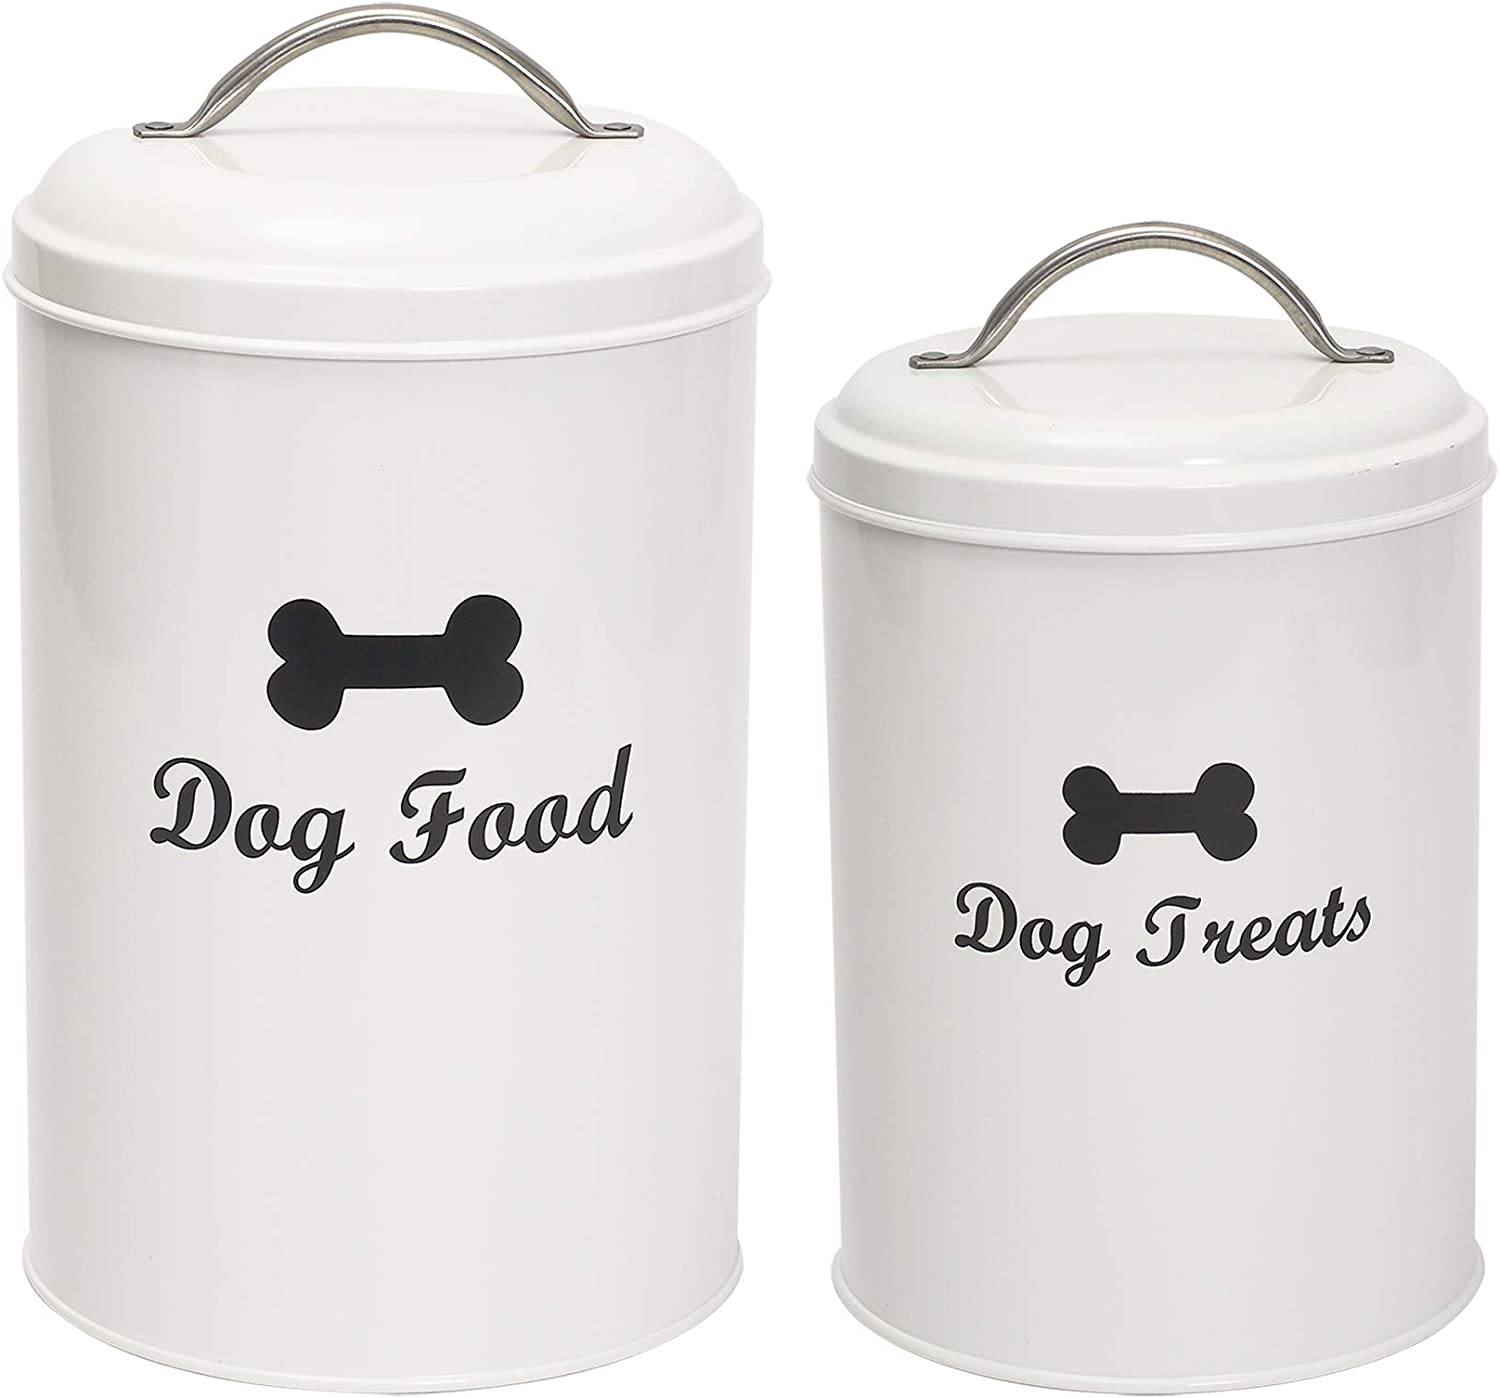 Geyecete Dog Food and Treats Containers Set with Scoop for Dogs - Coated Carbon Steel - Tight Fitting Lids - Pets Treat Canister Set